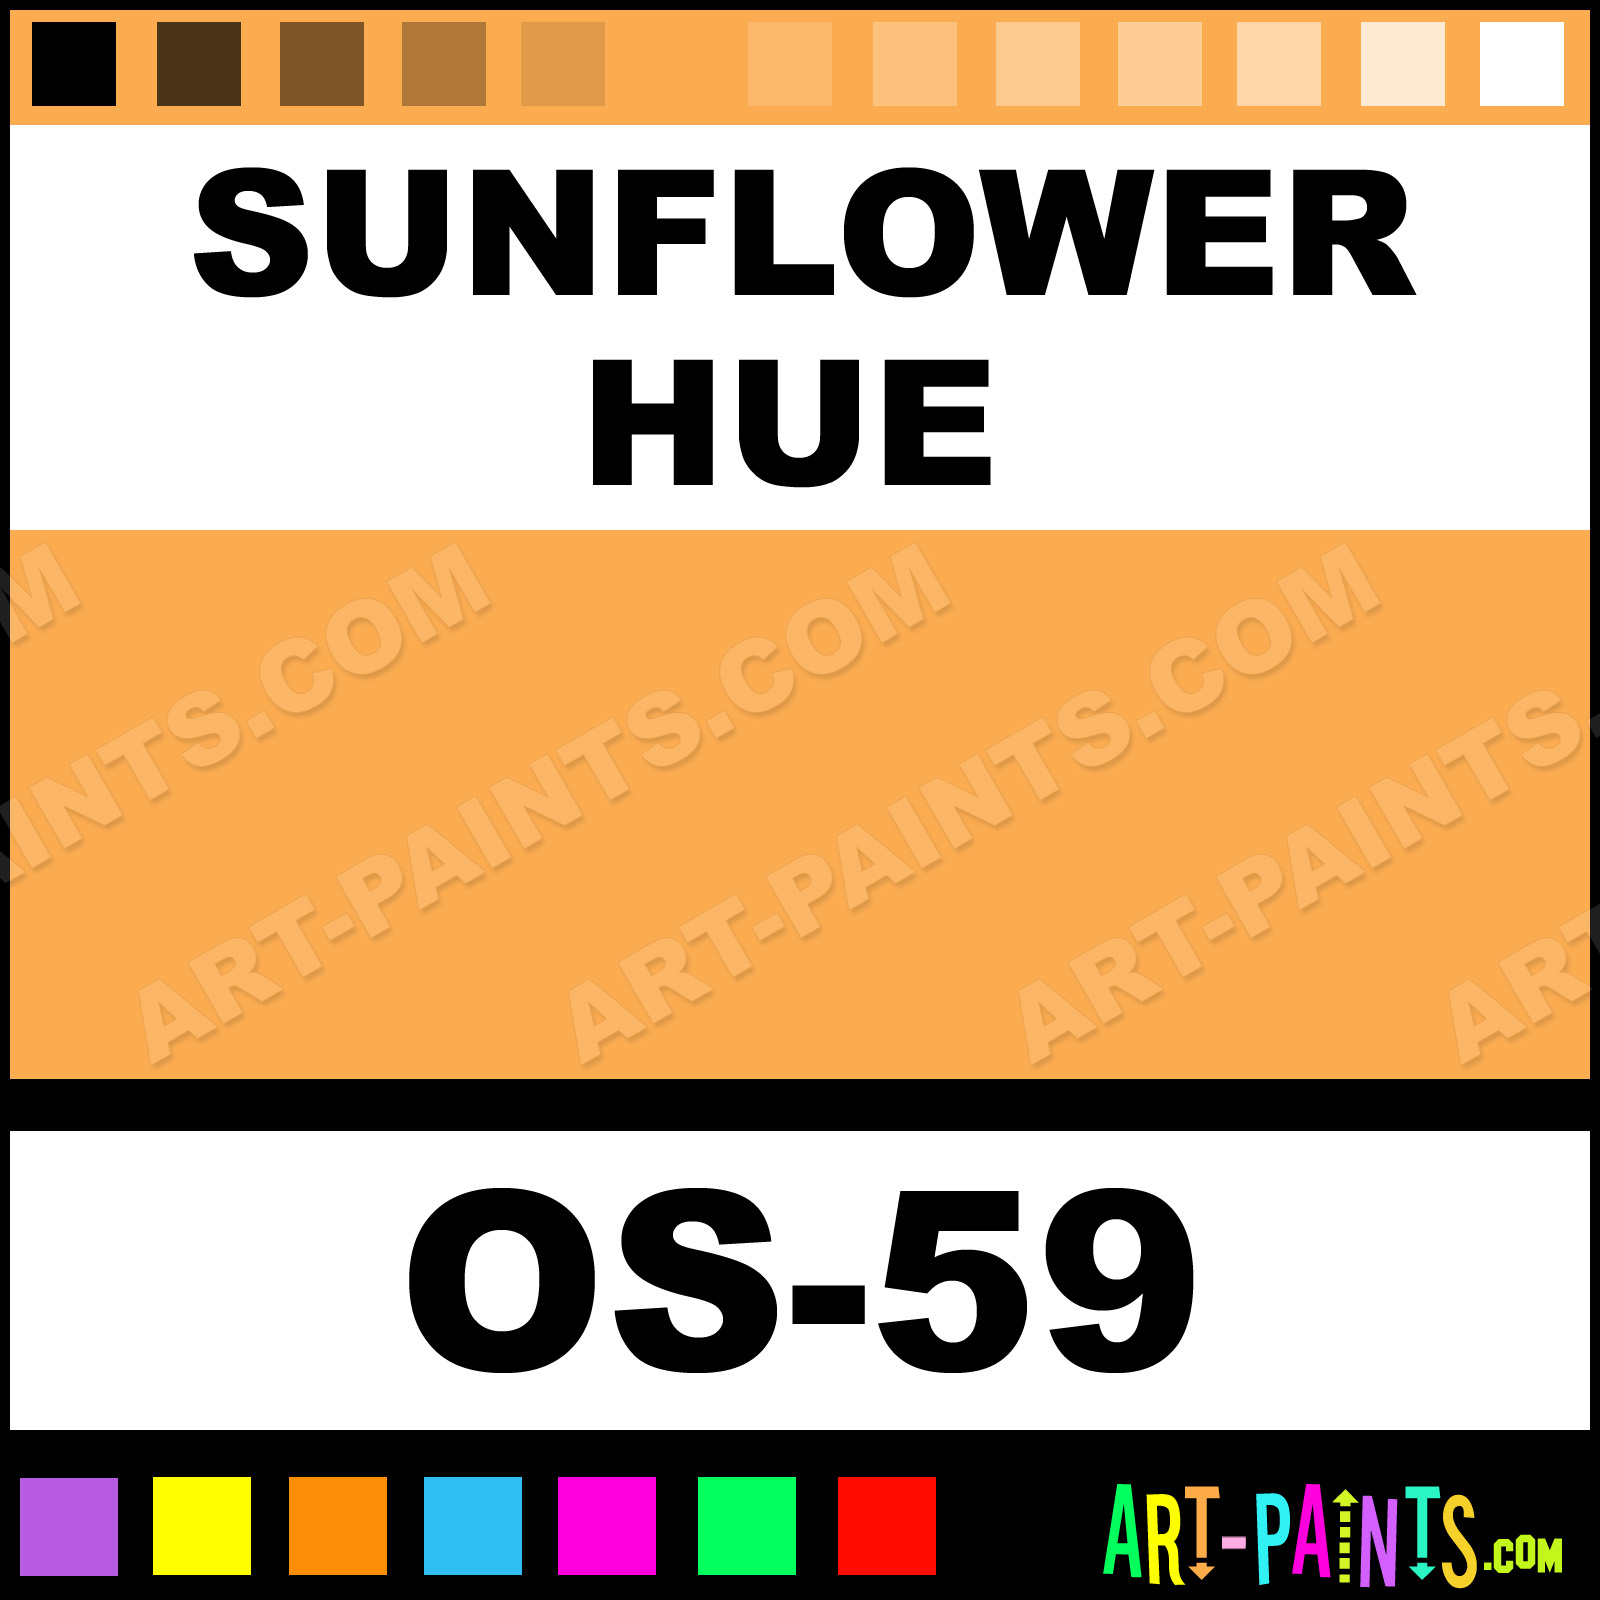 One Stroke Painting Sunflowers http://www.art-paints.com/Paints/Ceramic/Mayco/One-Stroke-Translucent/Sunflower/Sunflower.html